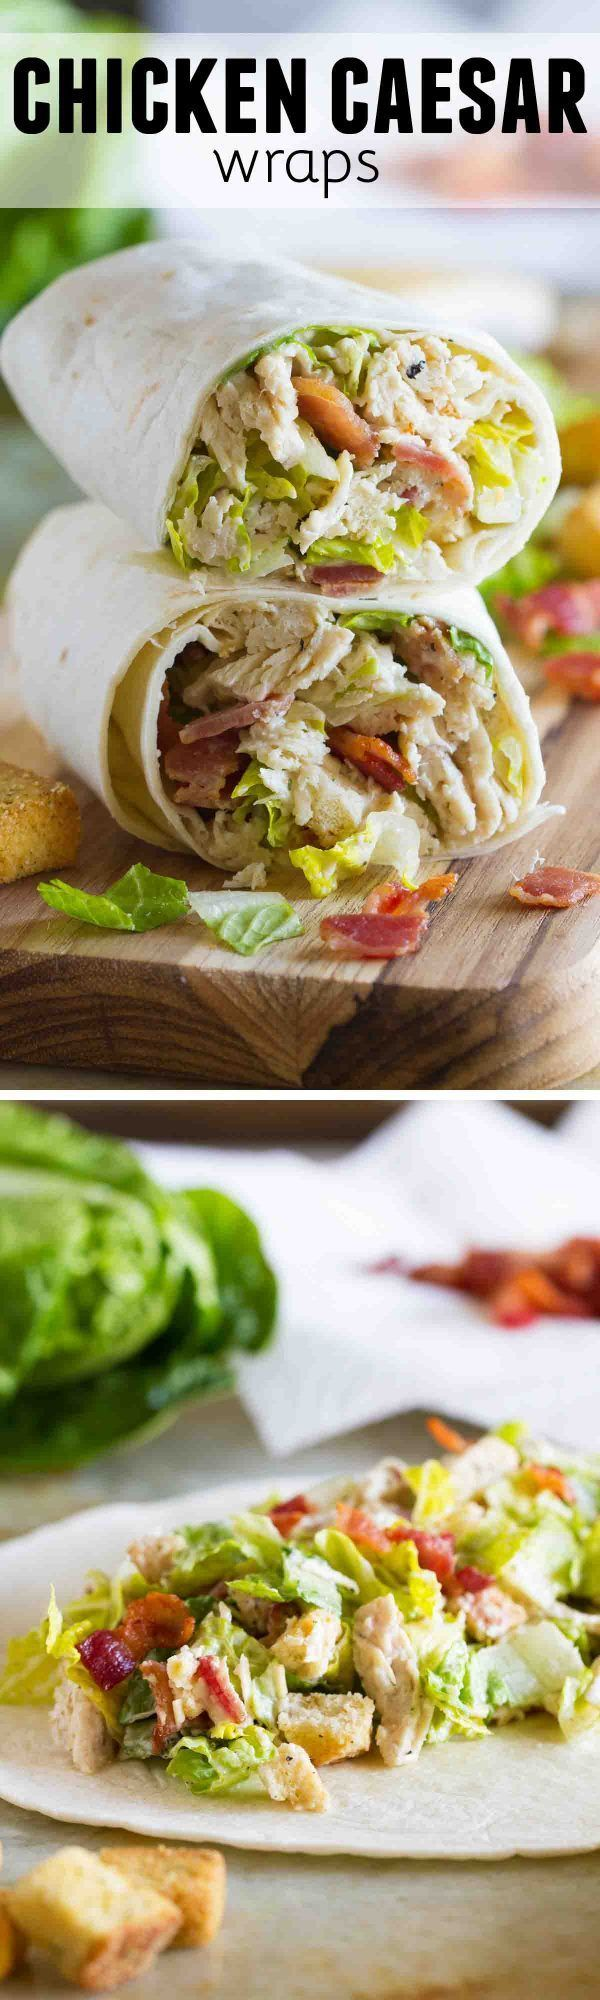 Lunch doesn't get much easier than this Chicken Caesar Wrap. Full of flavor, this wrap comes together easily with pre-cooked shredded chicken.: